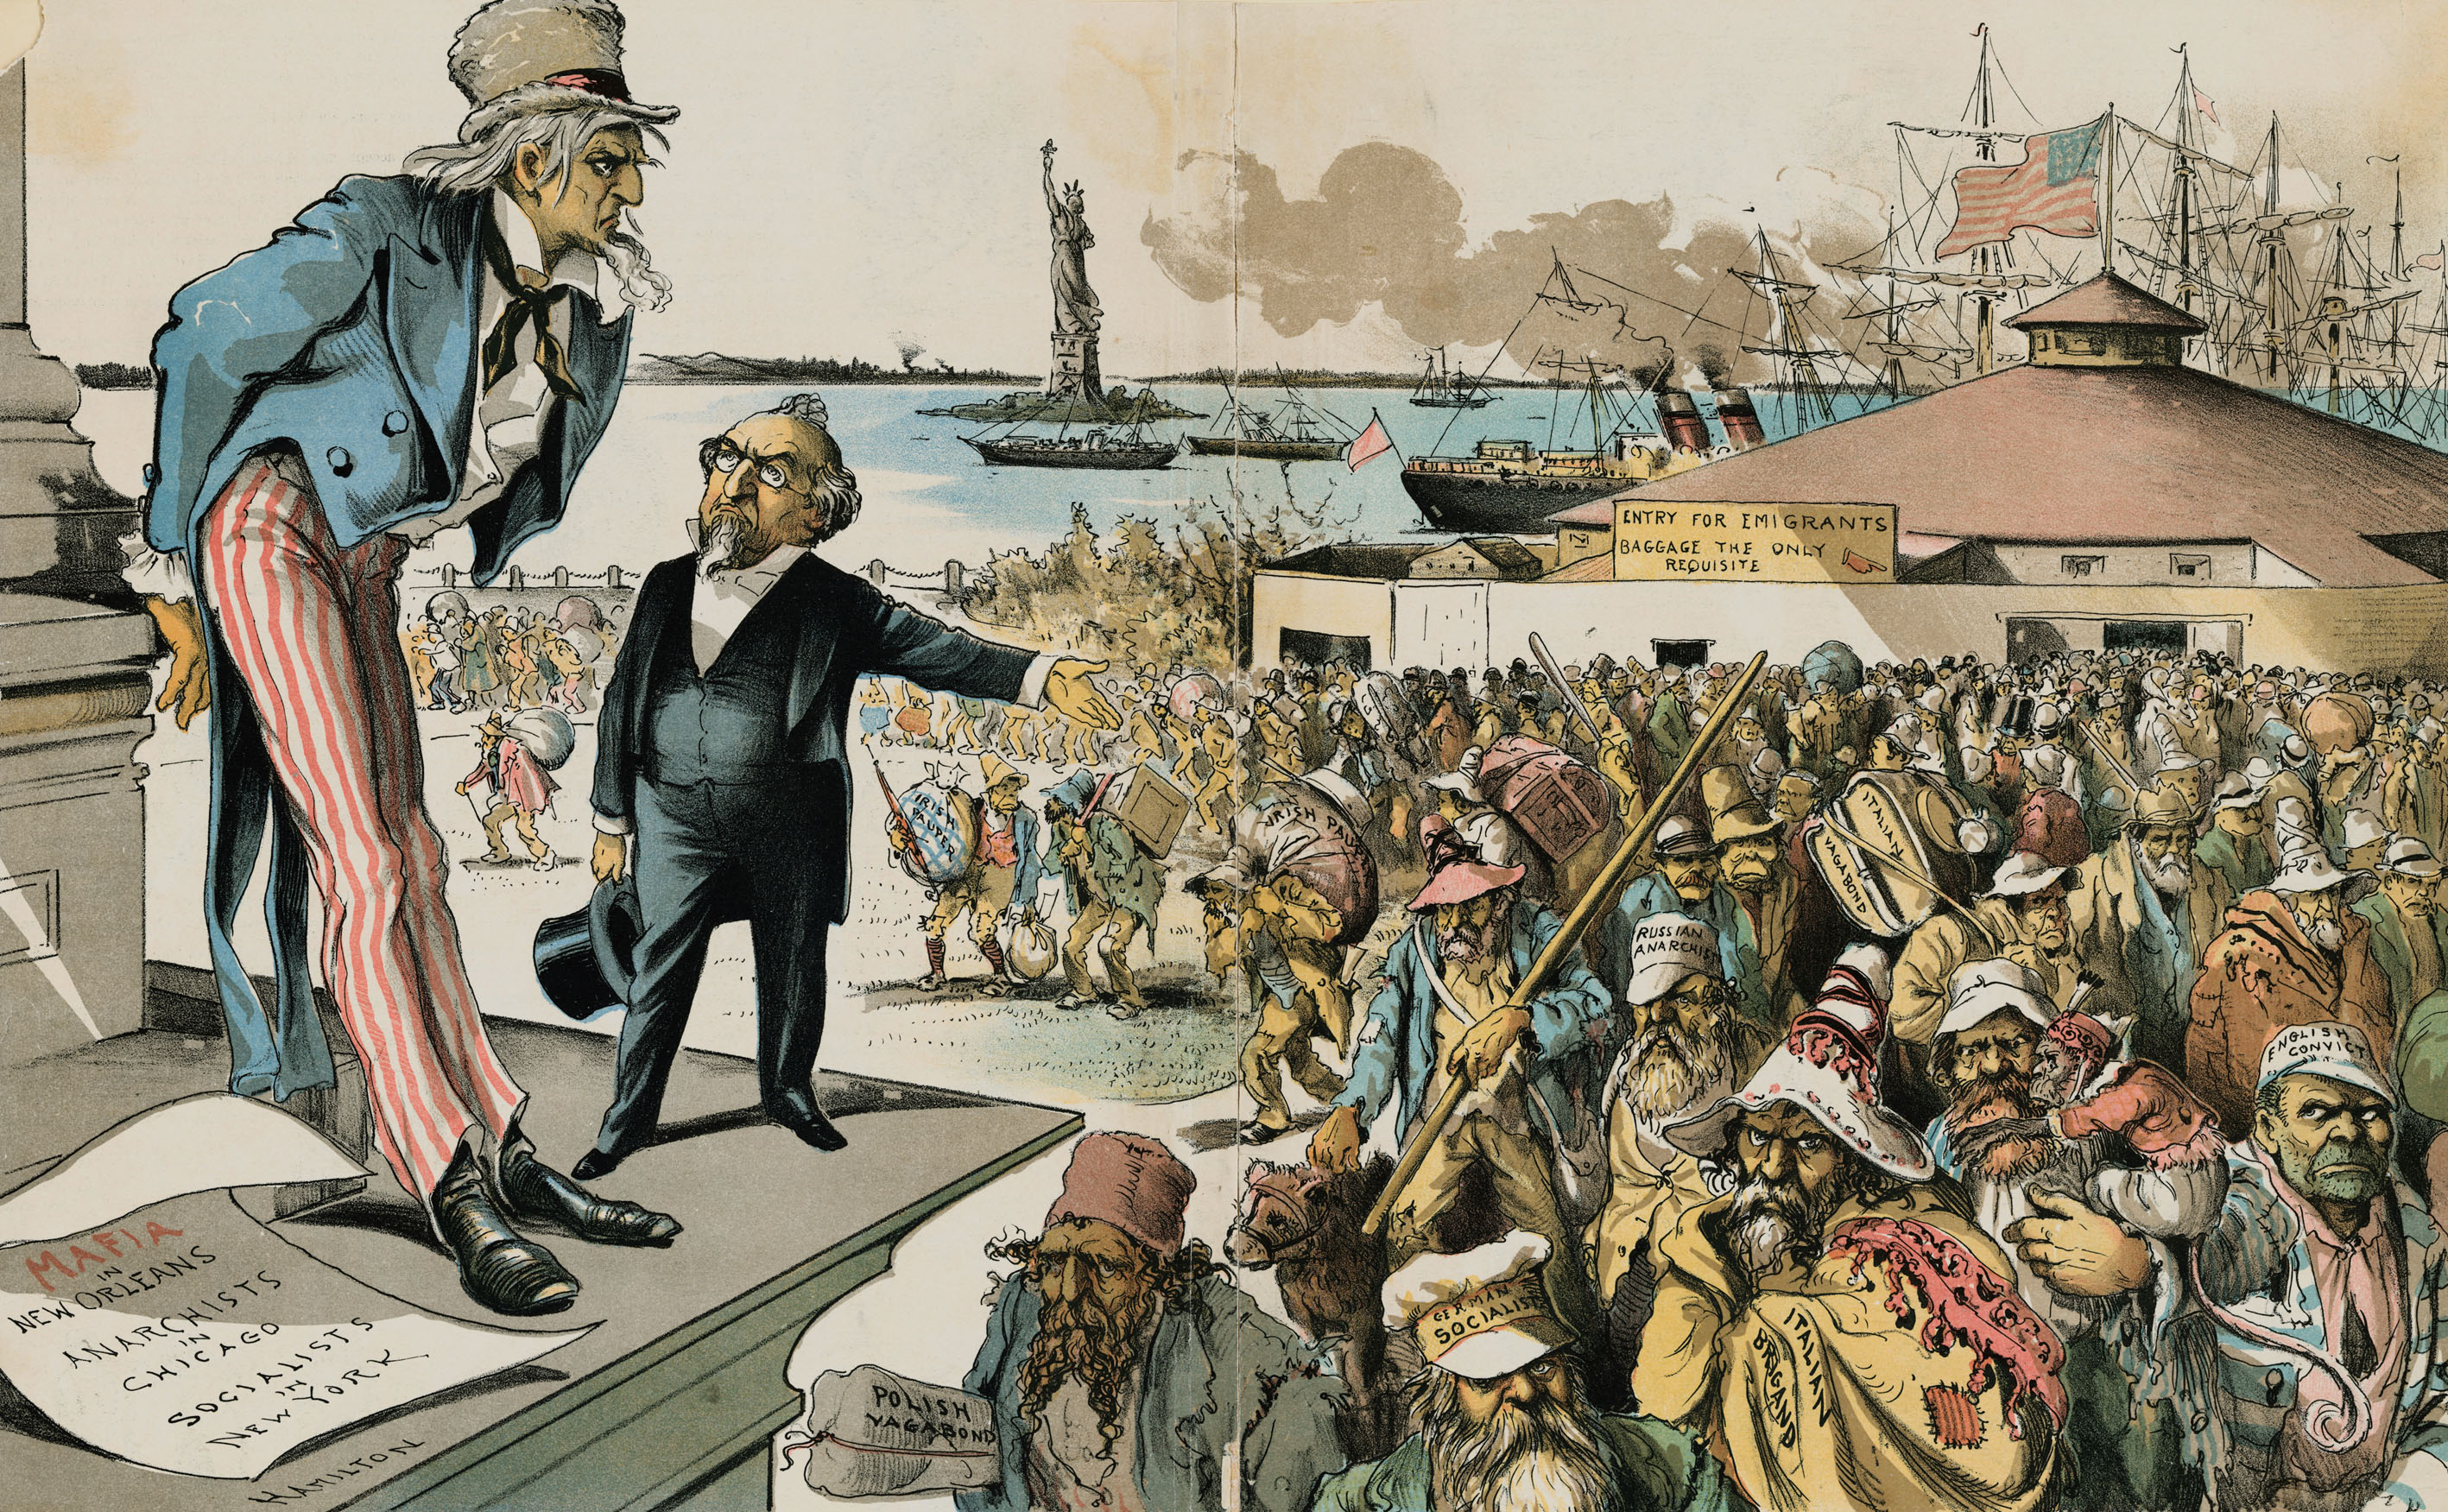 america as an immigrant consumer and democratic nation